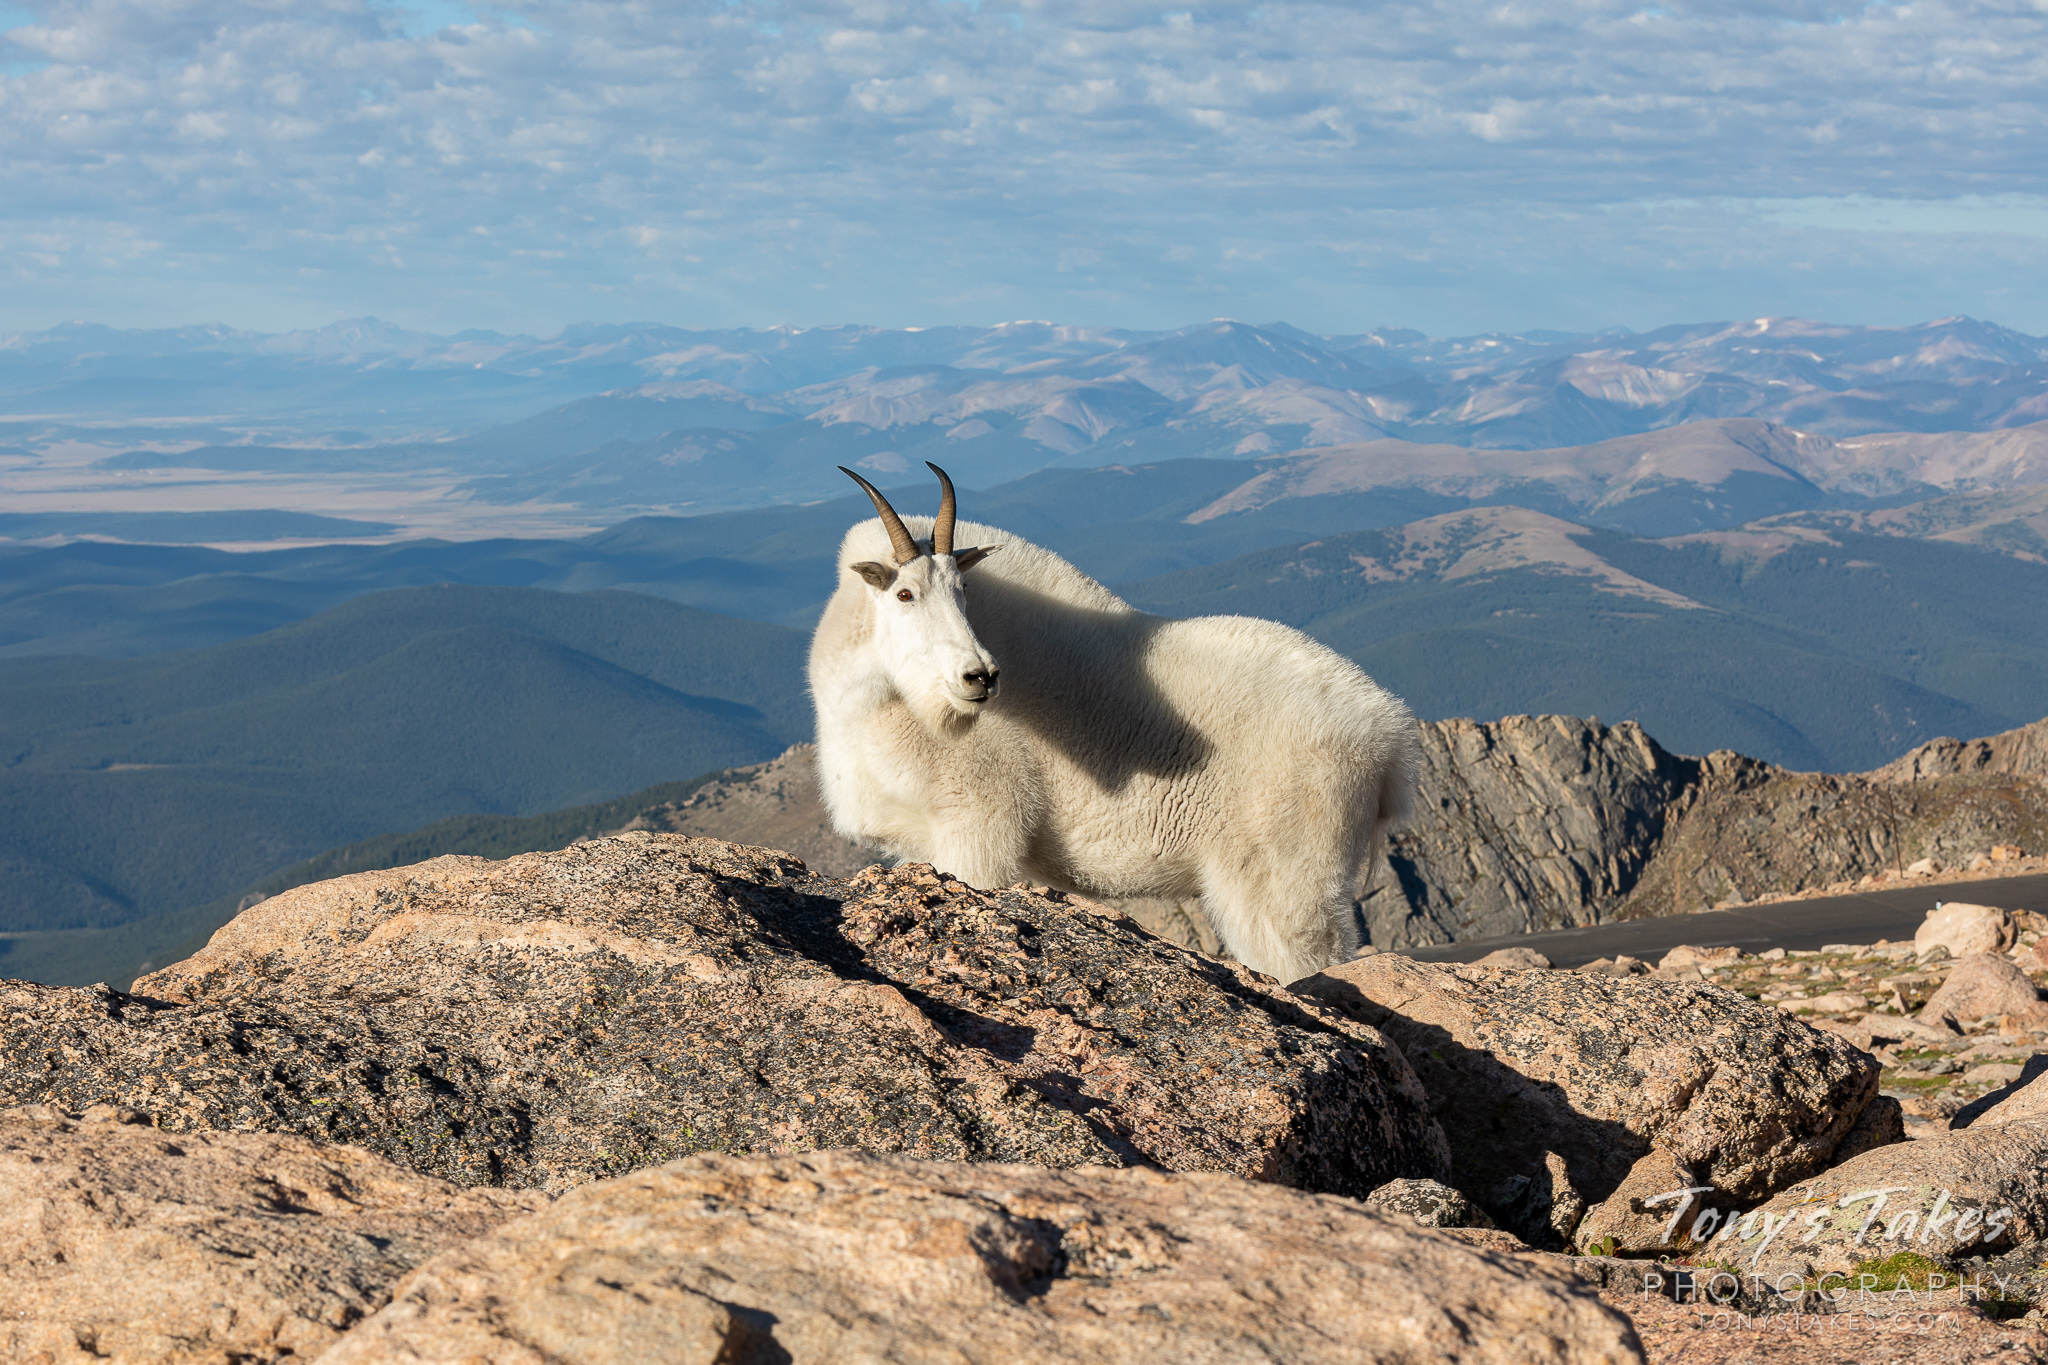 A mountain goat billy poses near the summit of Mount Evans in Colorado. (© Tony's Takes)